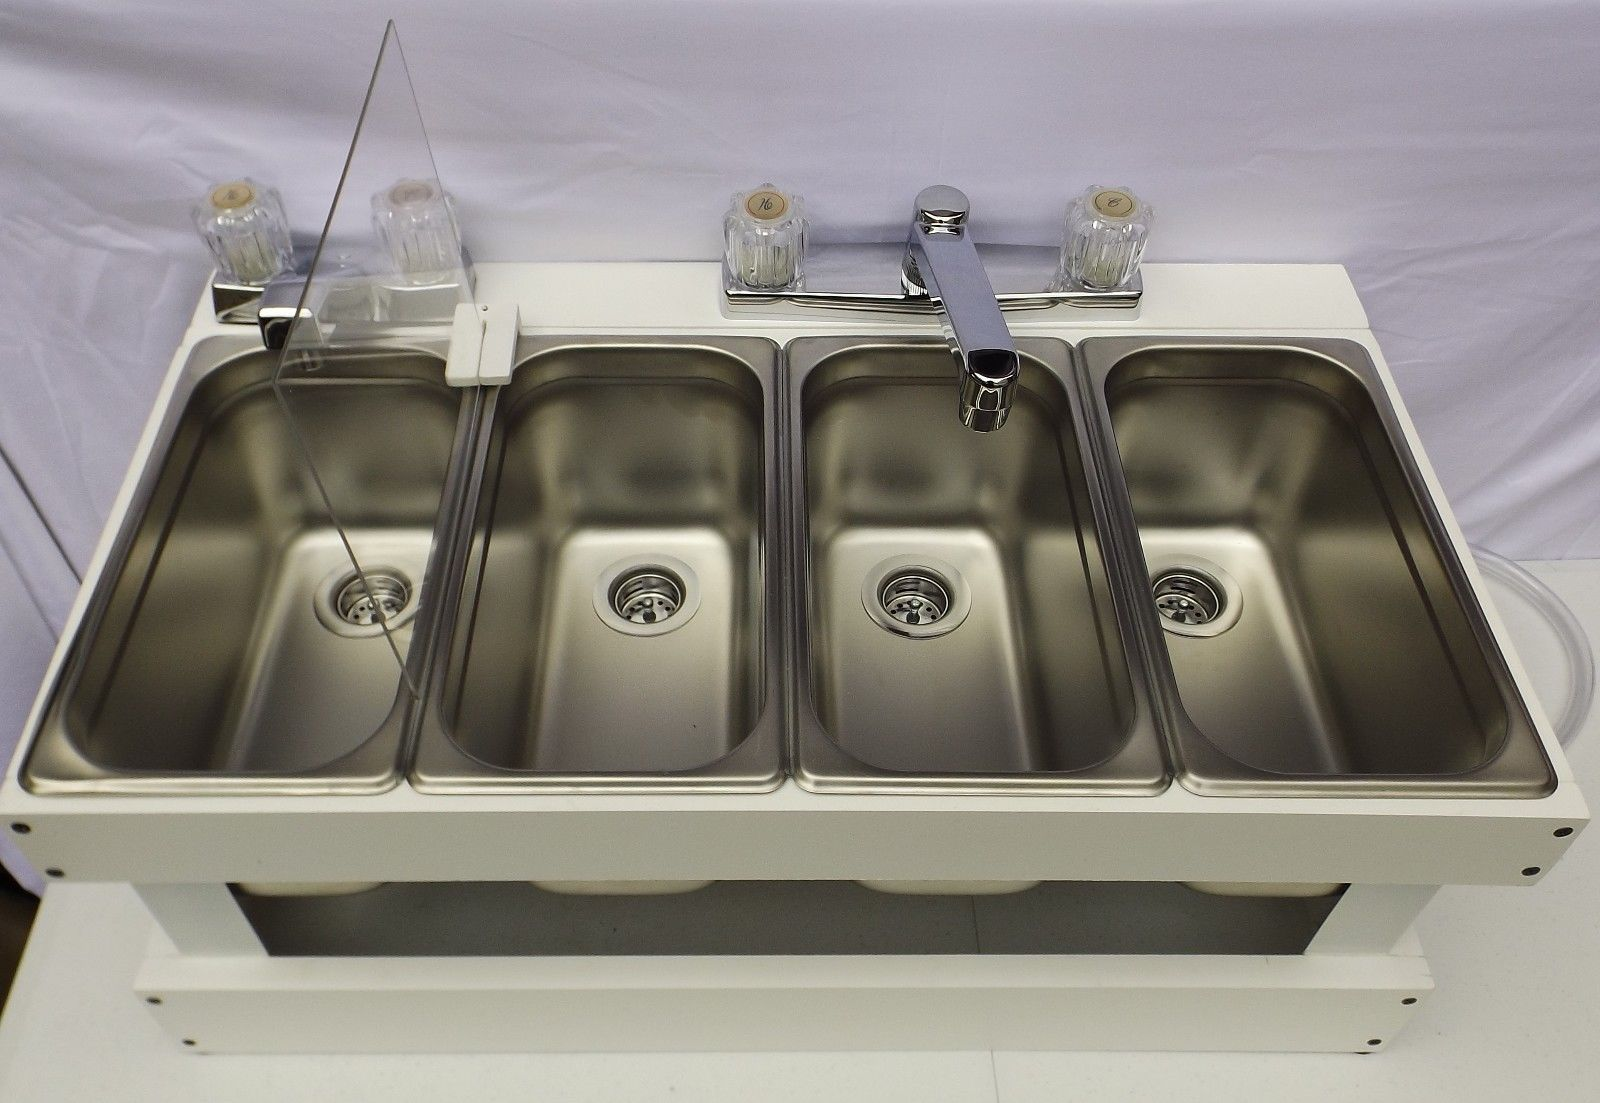 Stainless Steel Sinks For Concession Trailers Items Included 3